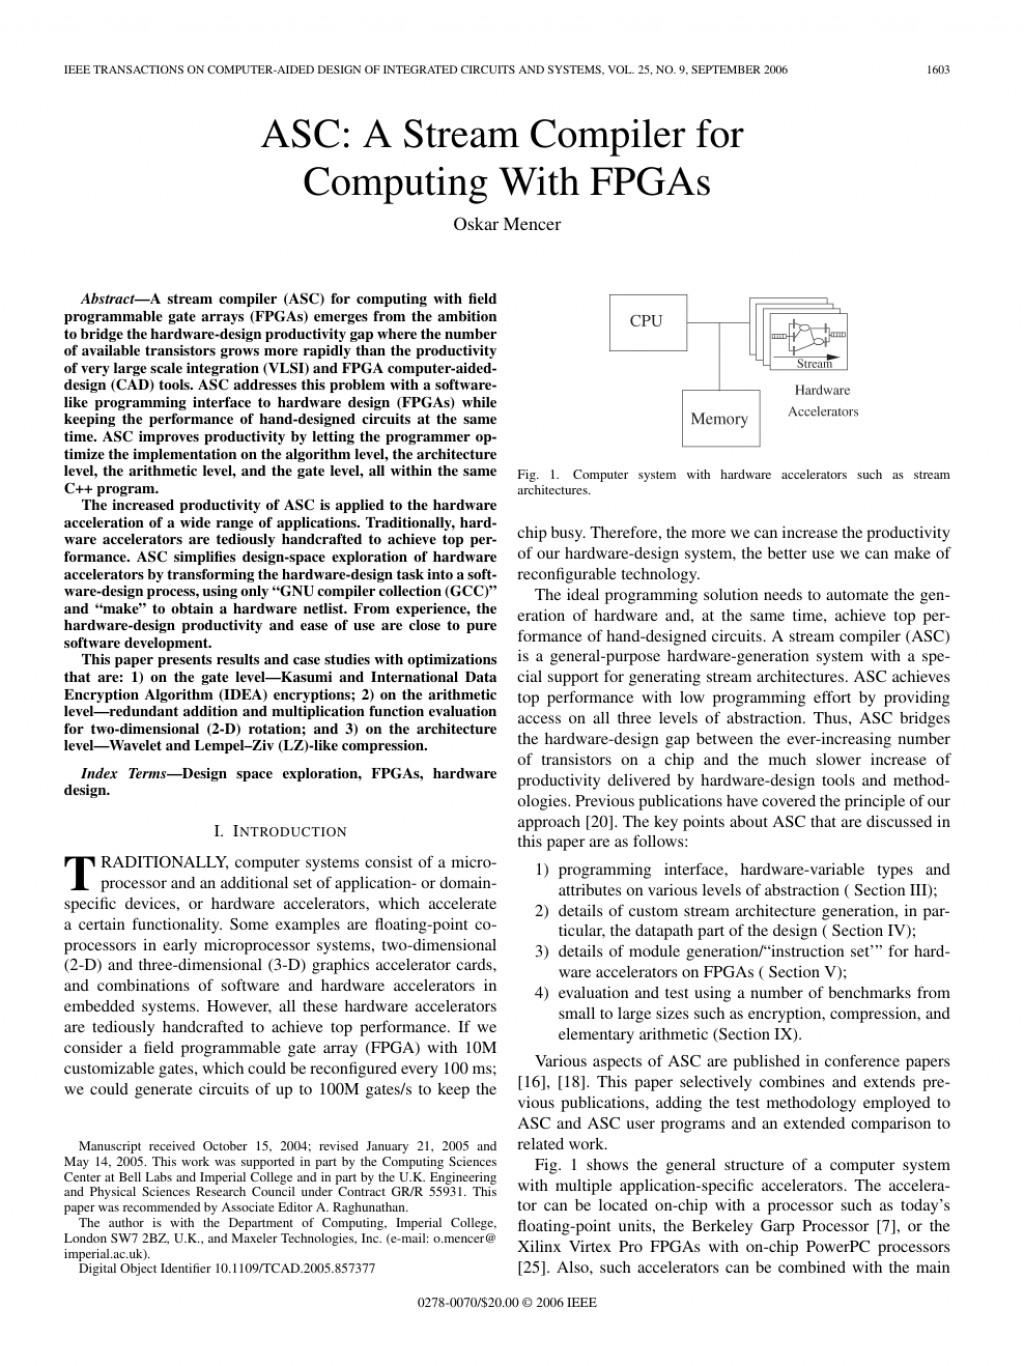 006 Free Ieee Researchs Computer Science Unusual Research Papers On In Paper For Large